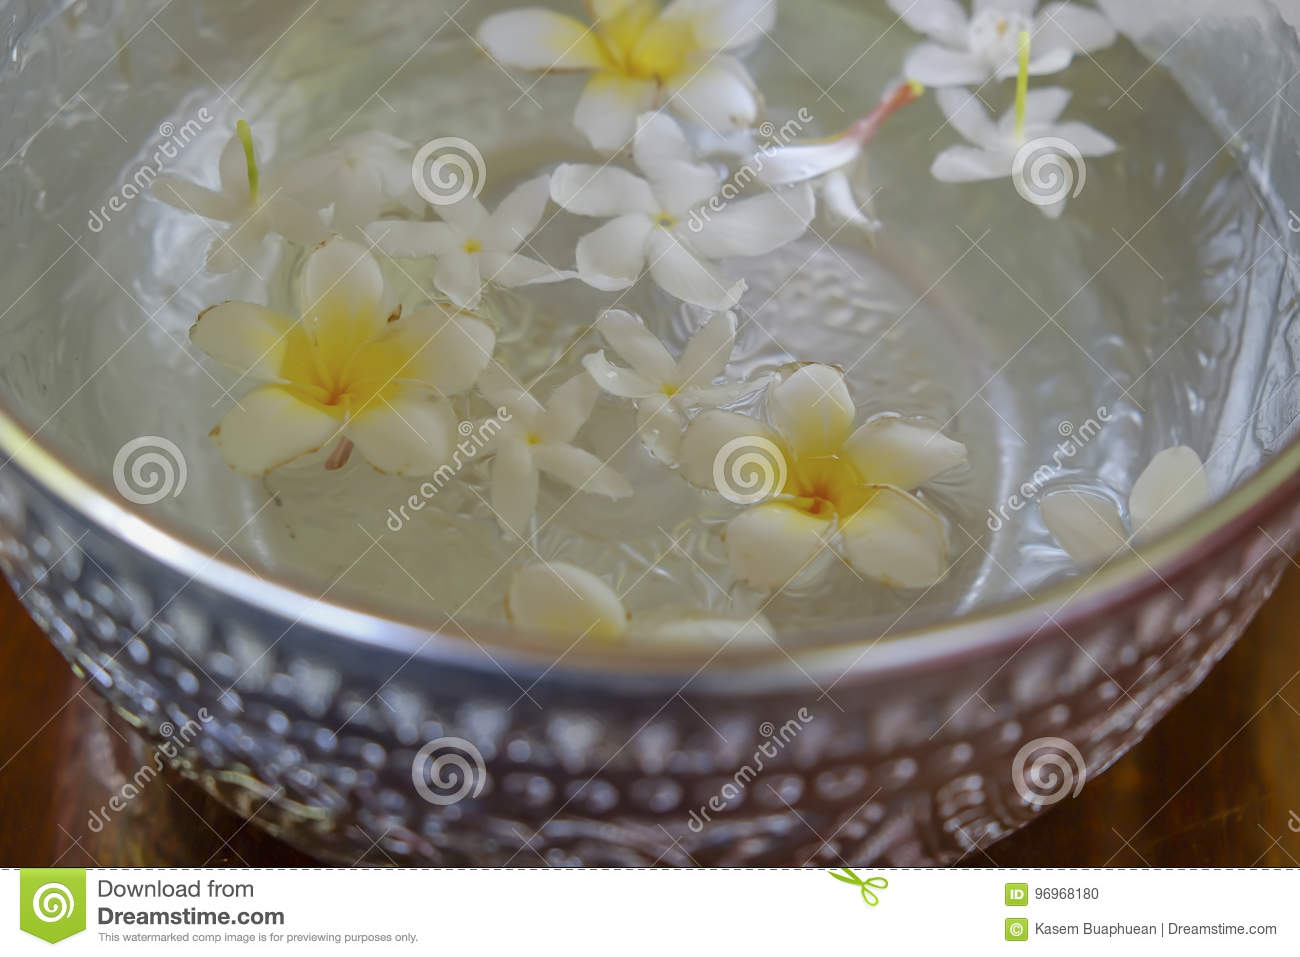 White flowers float in the bowl, Songkran Day, festival of Thailand